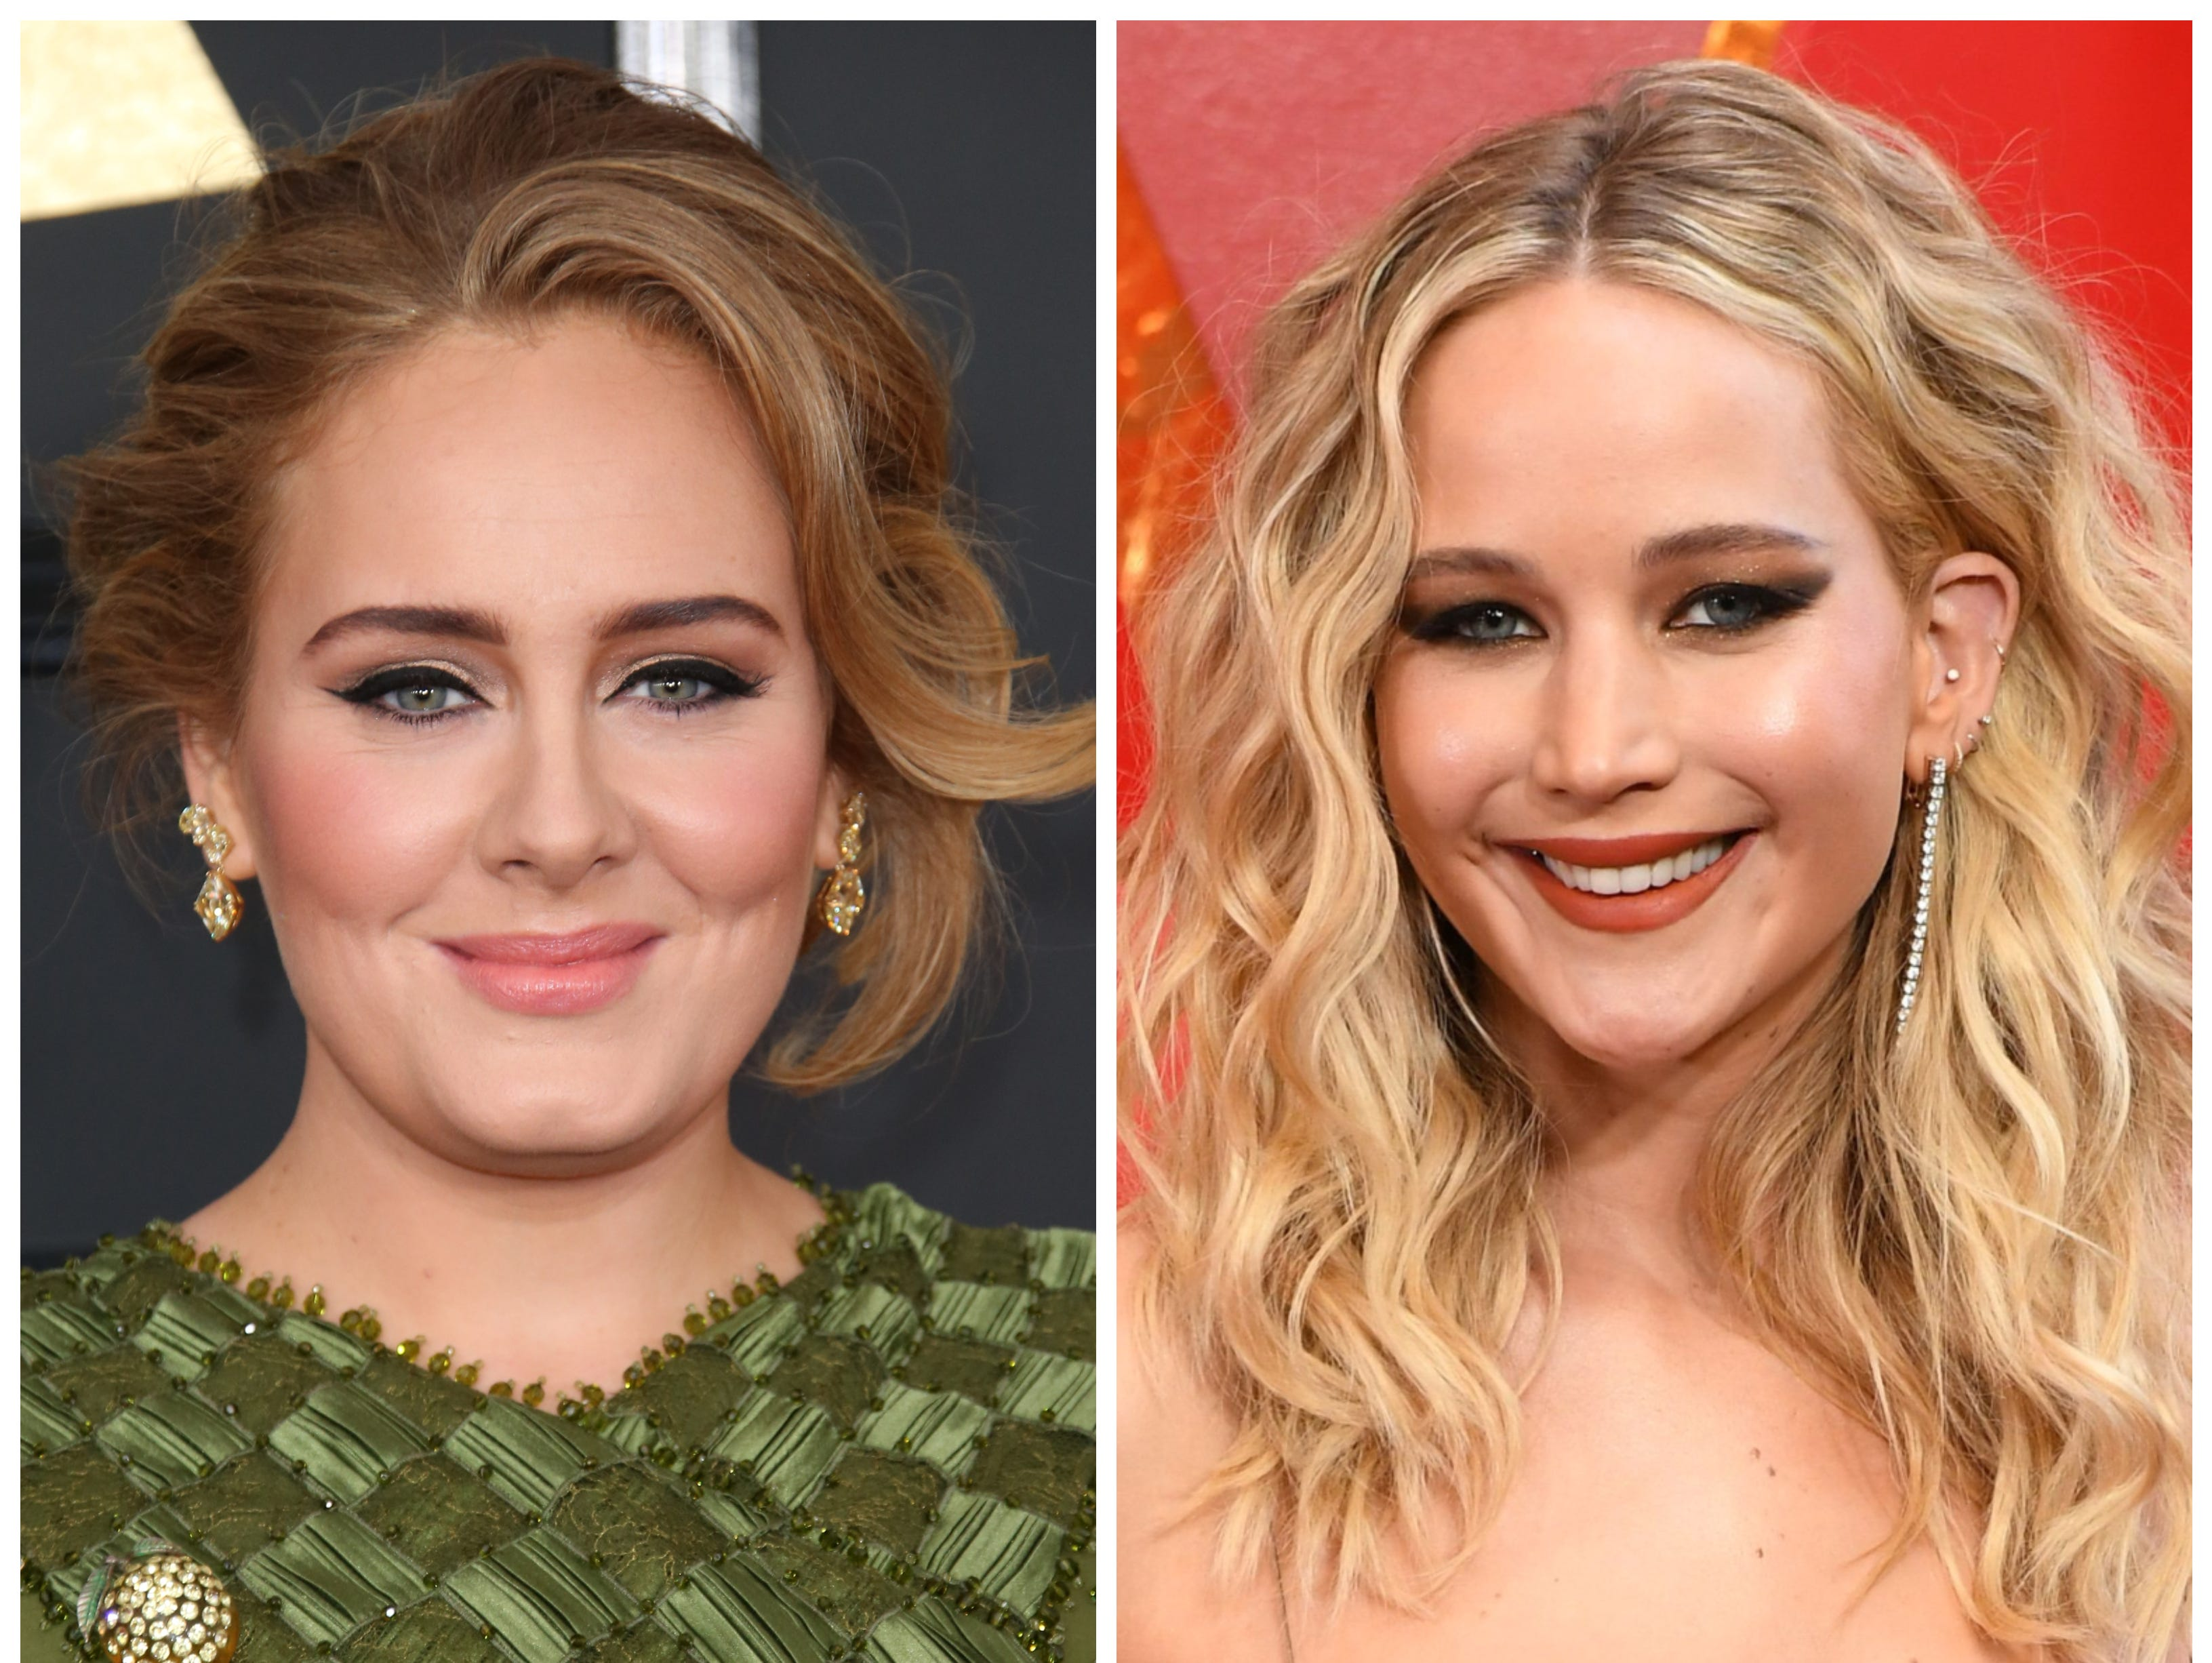 Adele, Jennifer Lawrence lived their best lives on a night out at a New York City gay bar